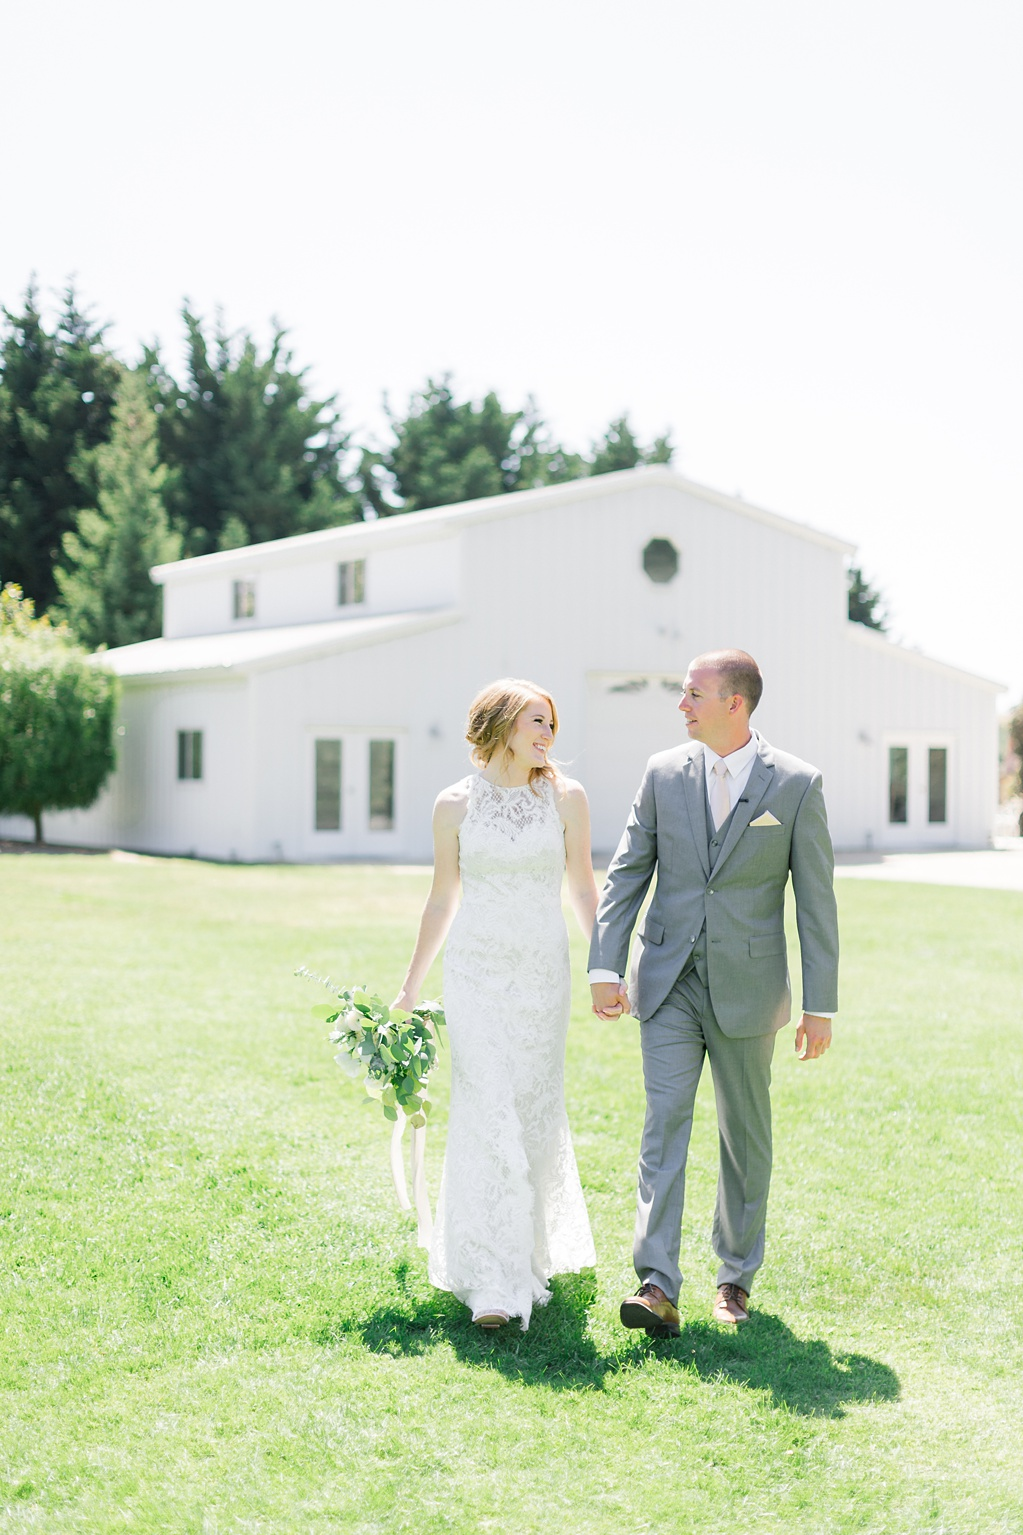 White Barn Inspired Summer Wedding In The Valley of Arroyo Grande, California by Wedding Photographer Madison Ellis (42)